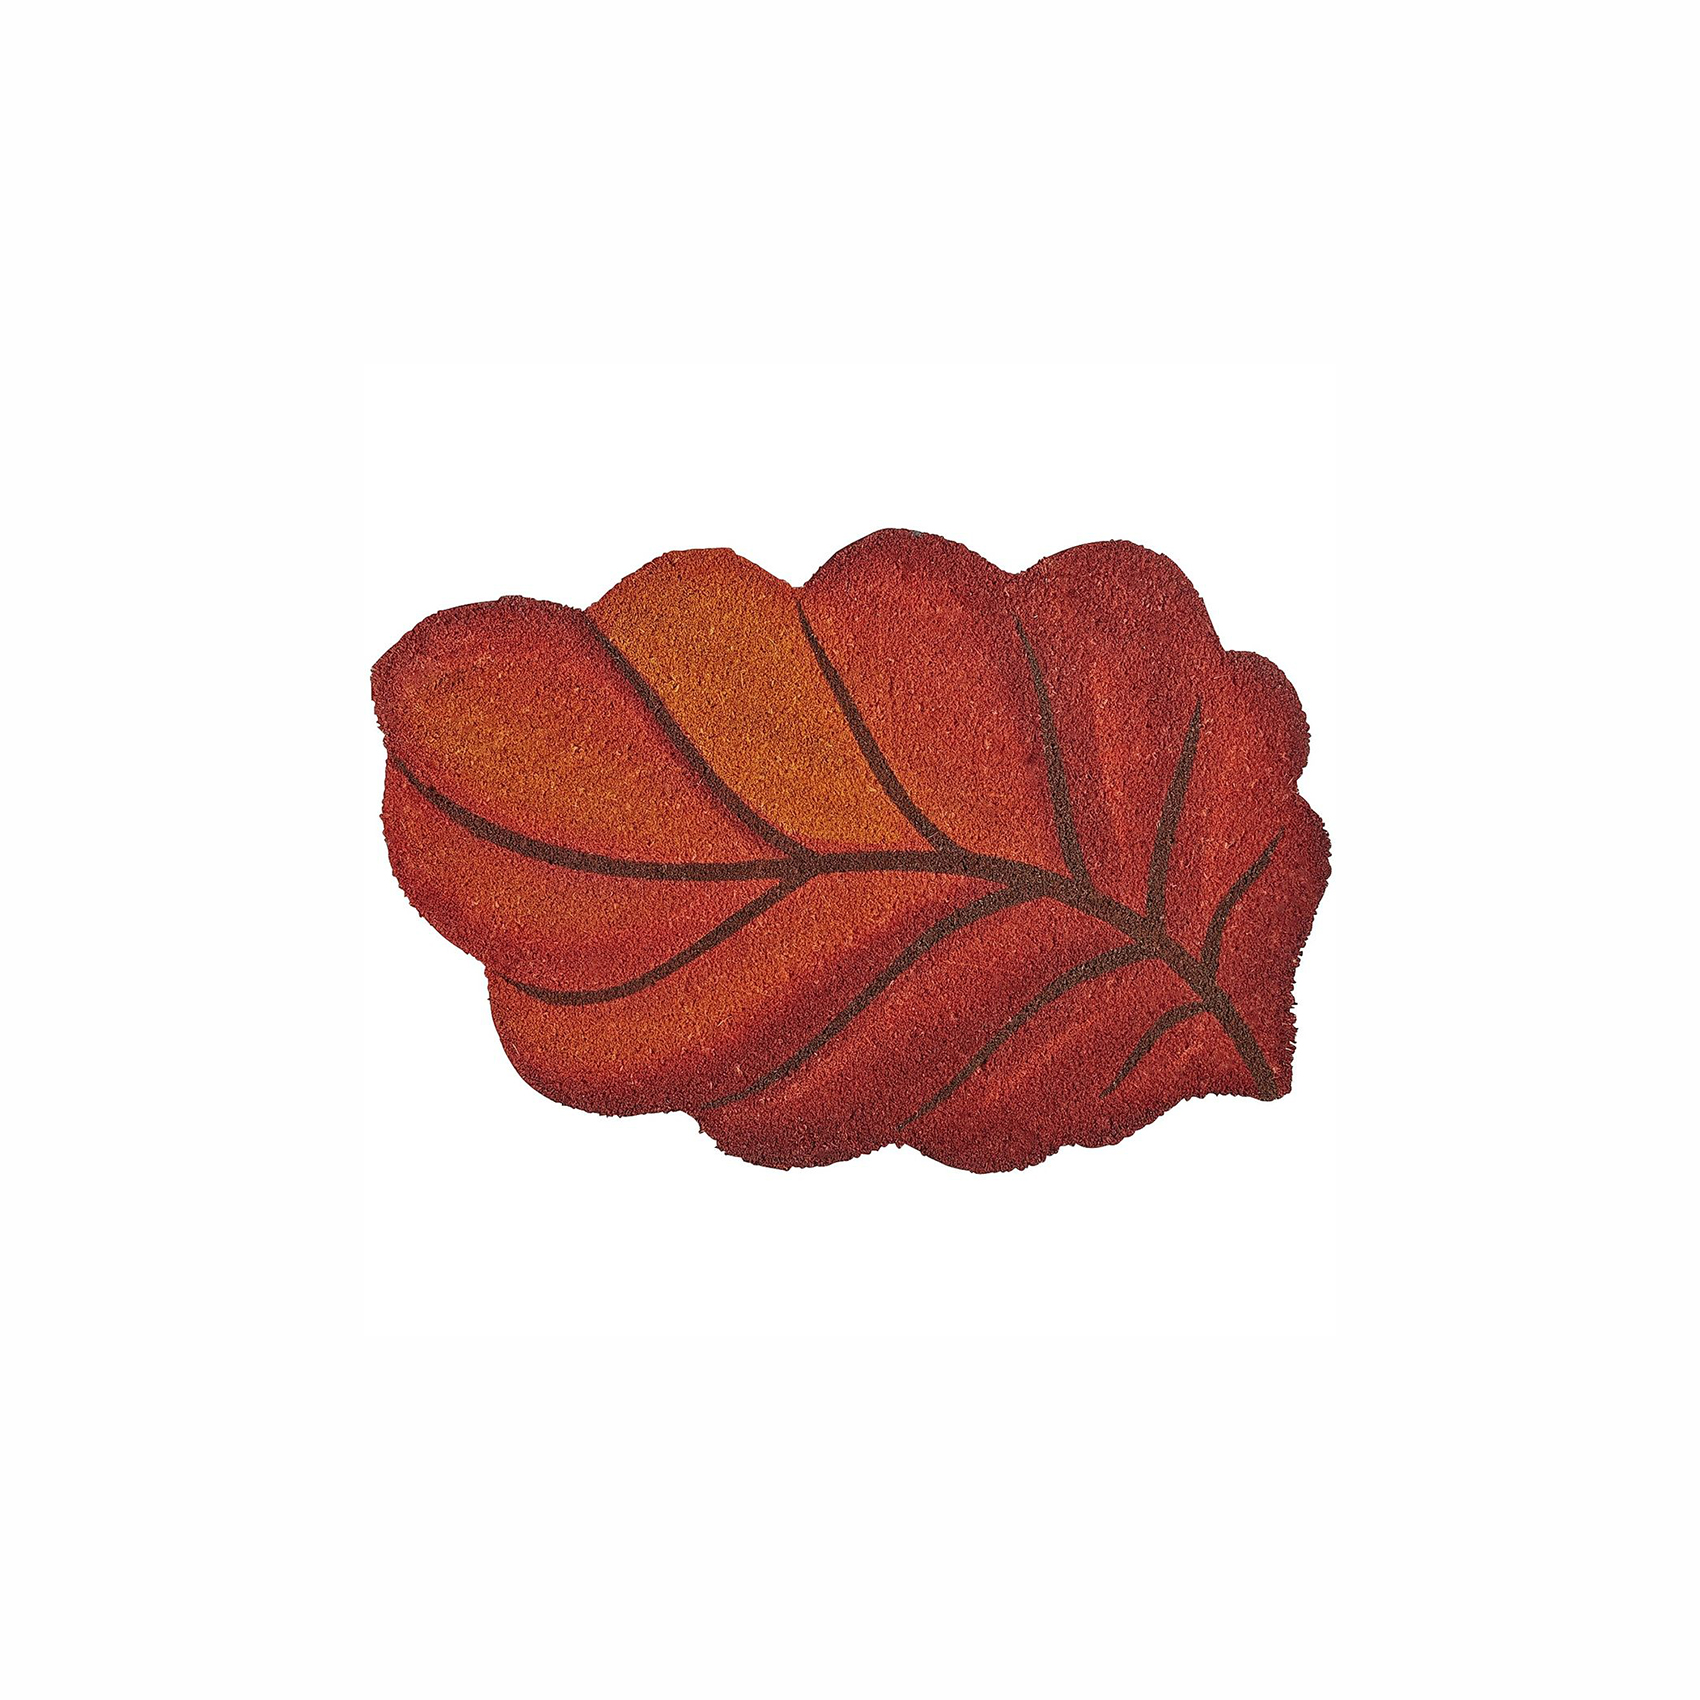 Leaf-Shaped Doormat